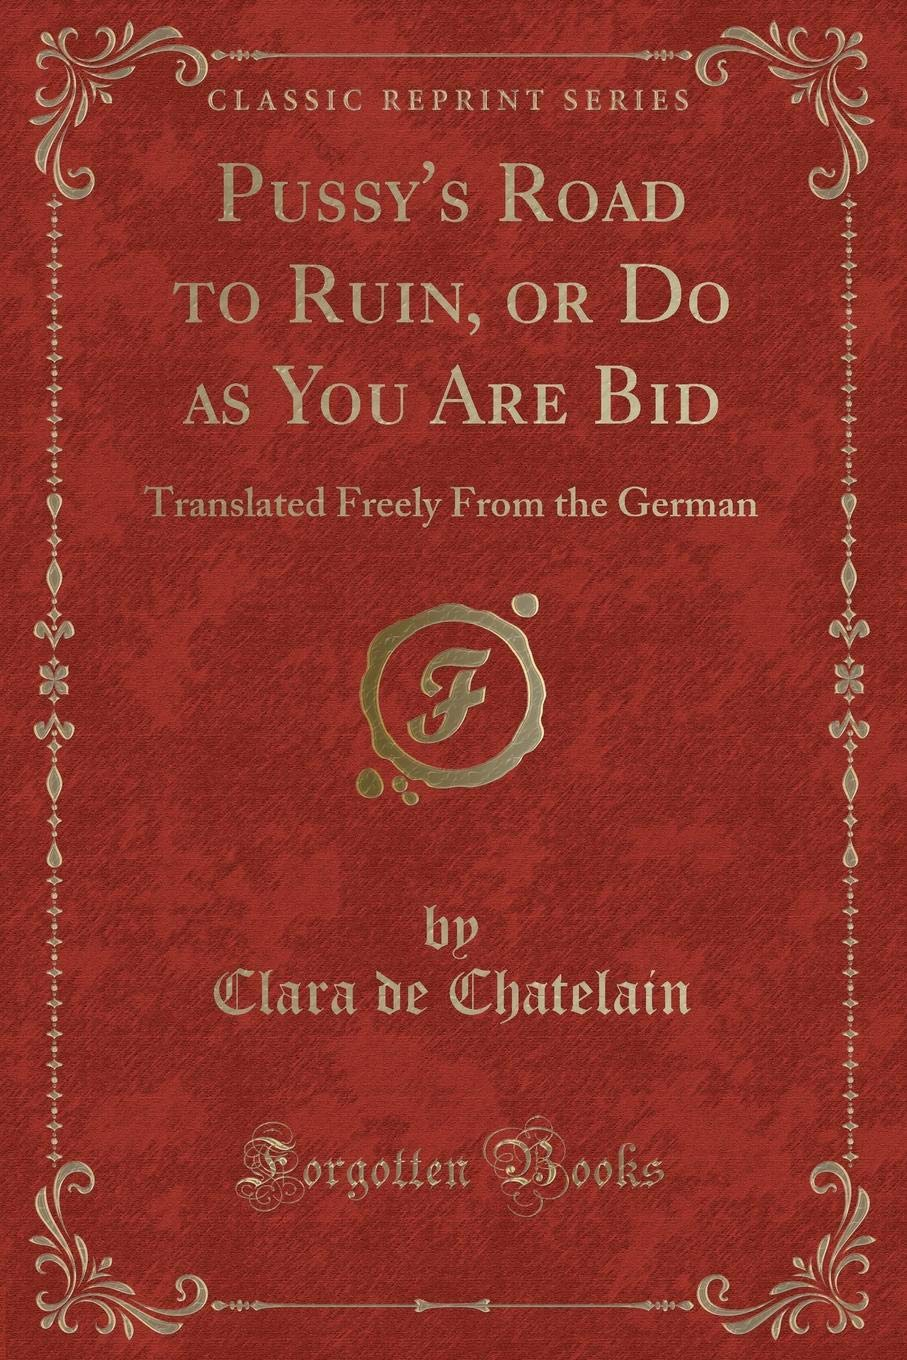 Pussy's Road to Ruin, or Do as You Are Bid: Translated Freely From the  German (Classic Reprint) Paperback – May 21, 2017